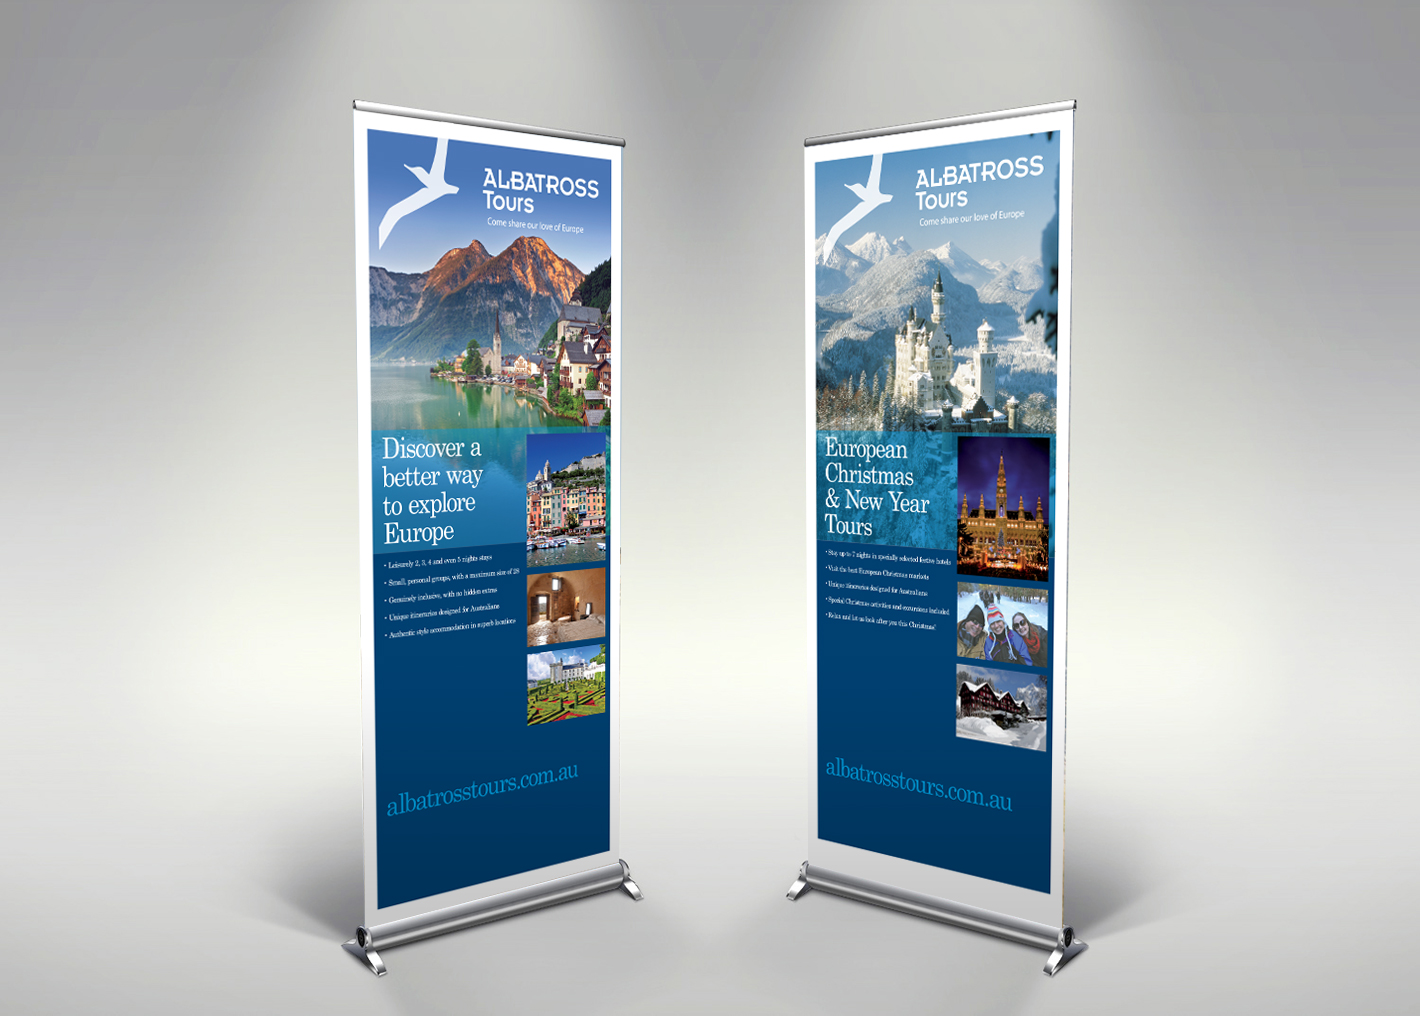 Albatross pull up banners